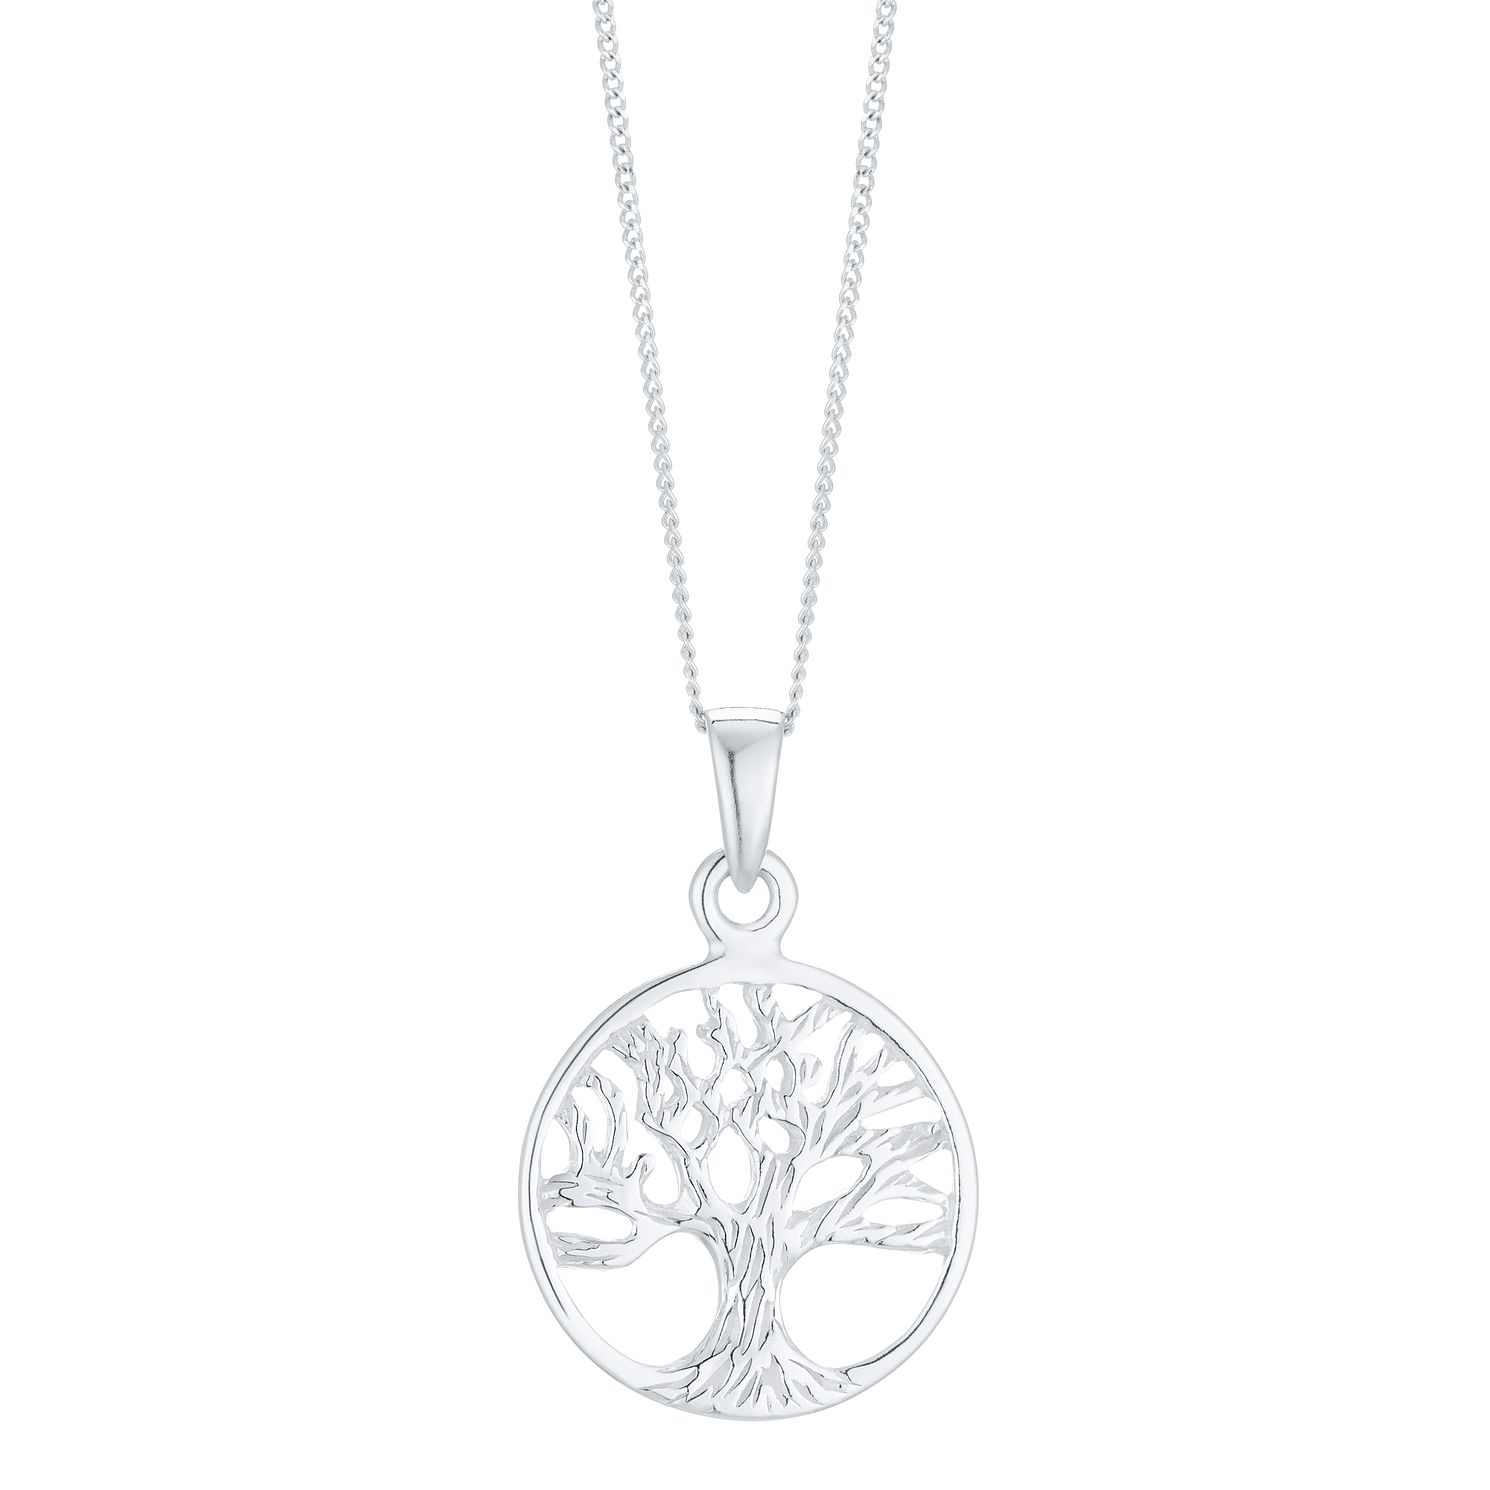 life of tree silver pendant sterling ptos necklace jewelry ps nanostyle products